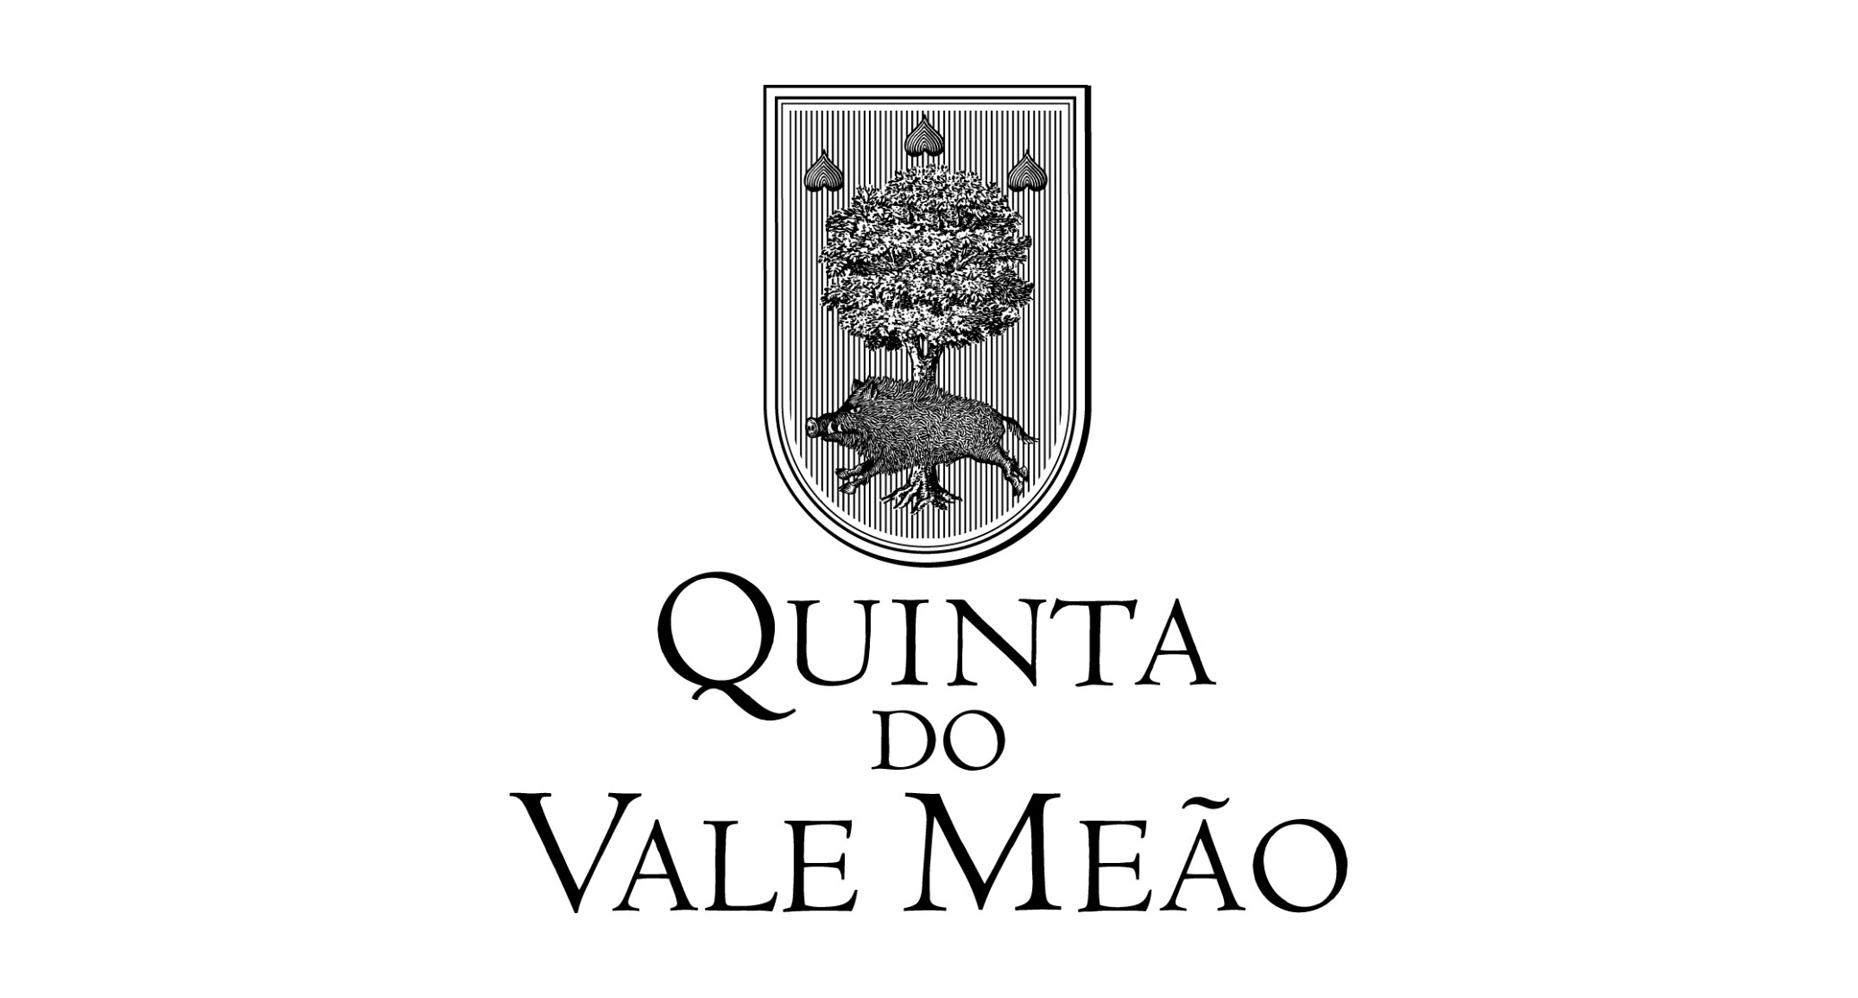 Vale Meao